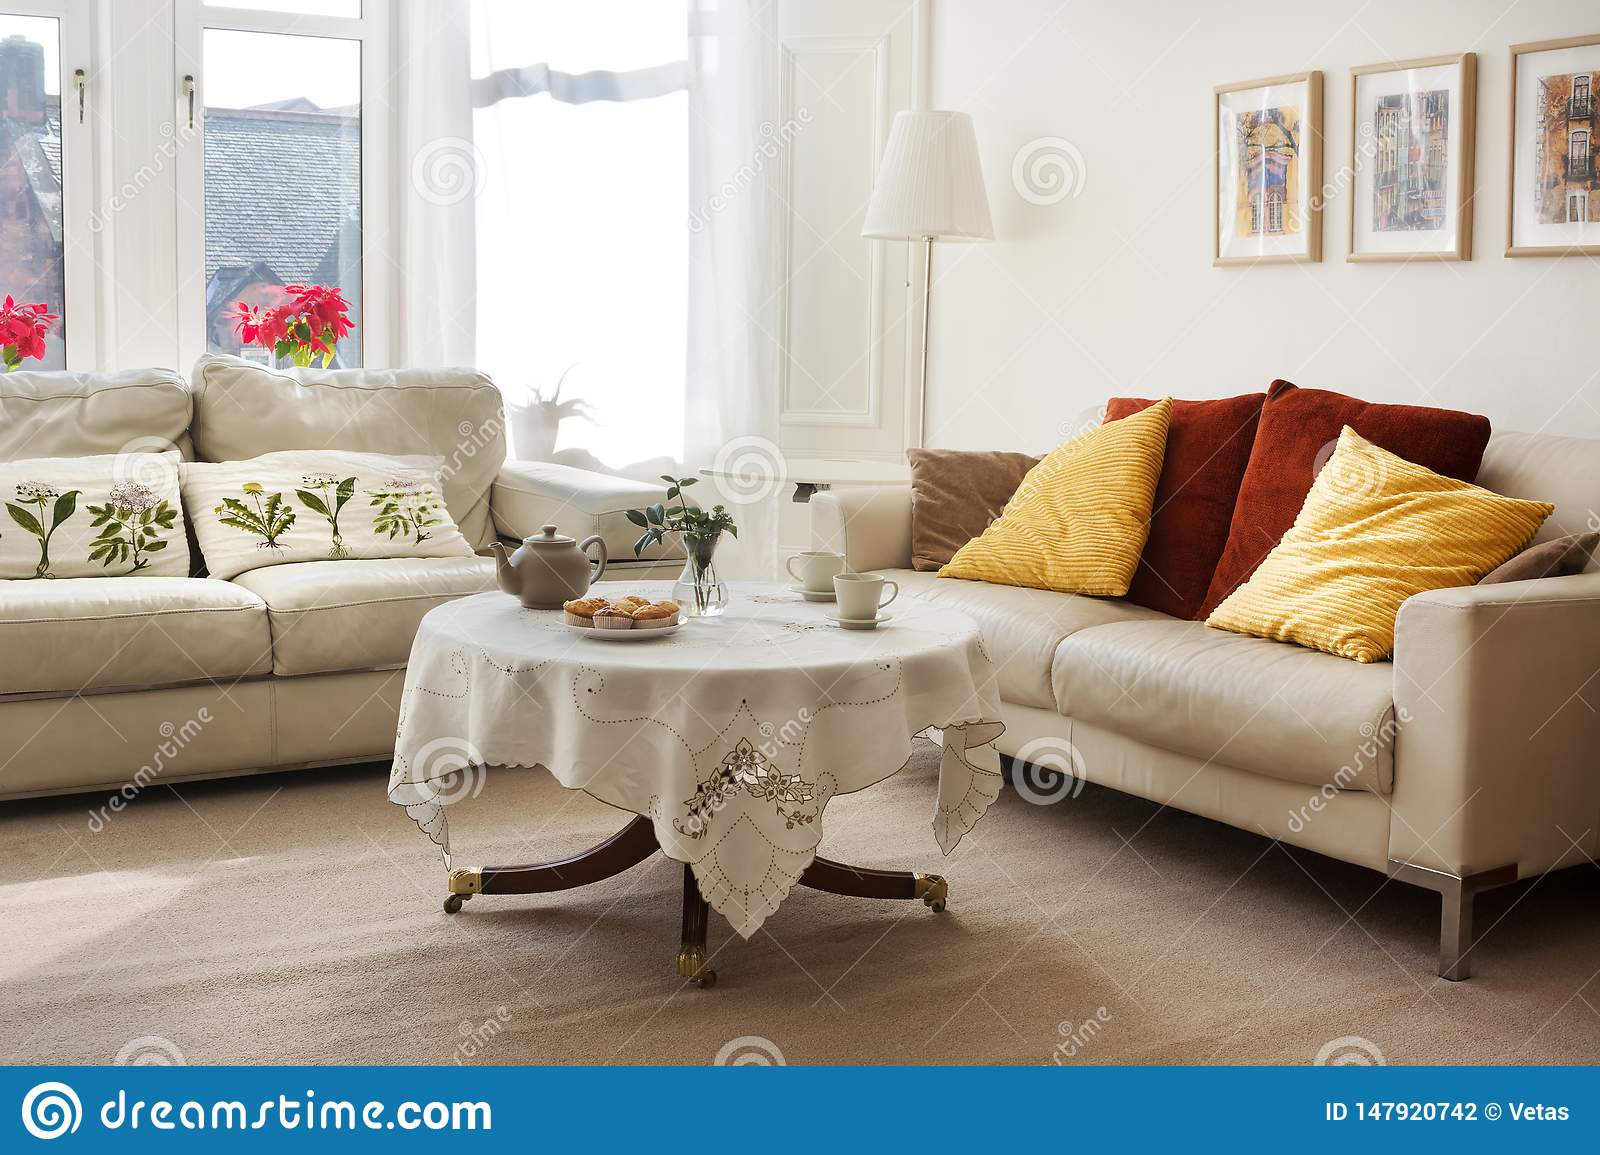 Sunlit Classic Style Living Room With Two Leather Sofas And